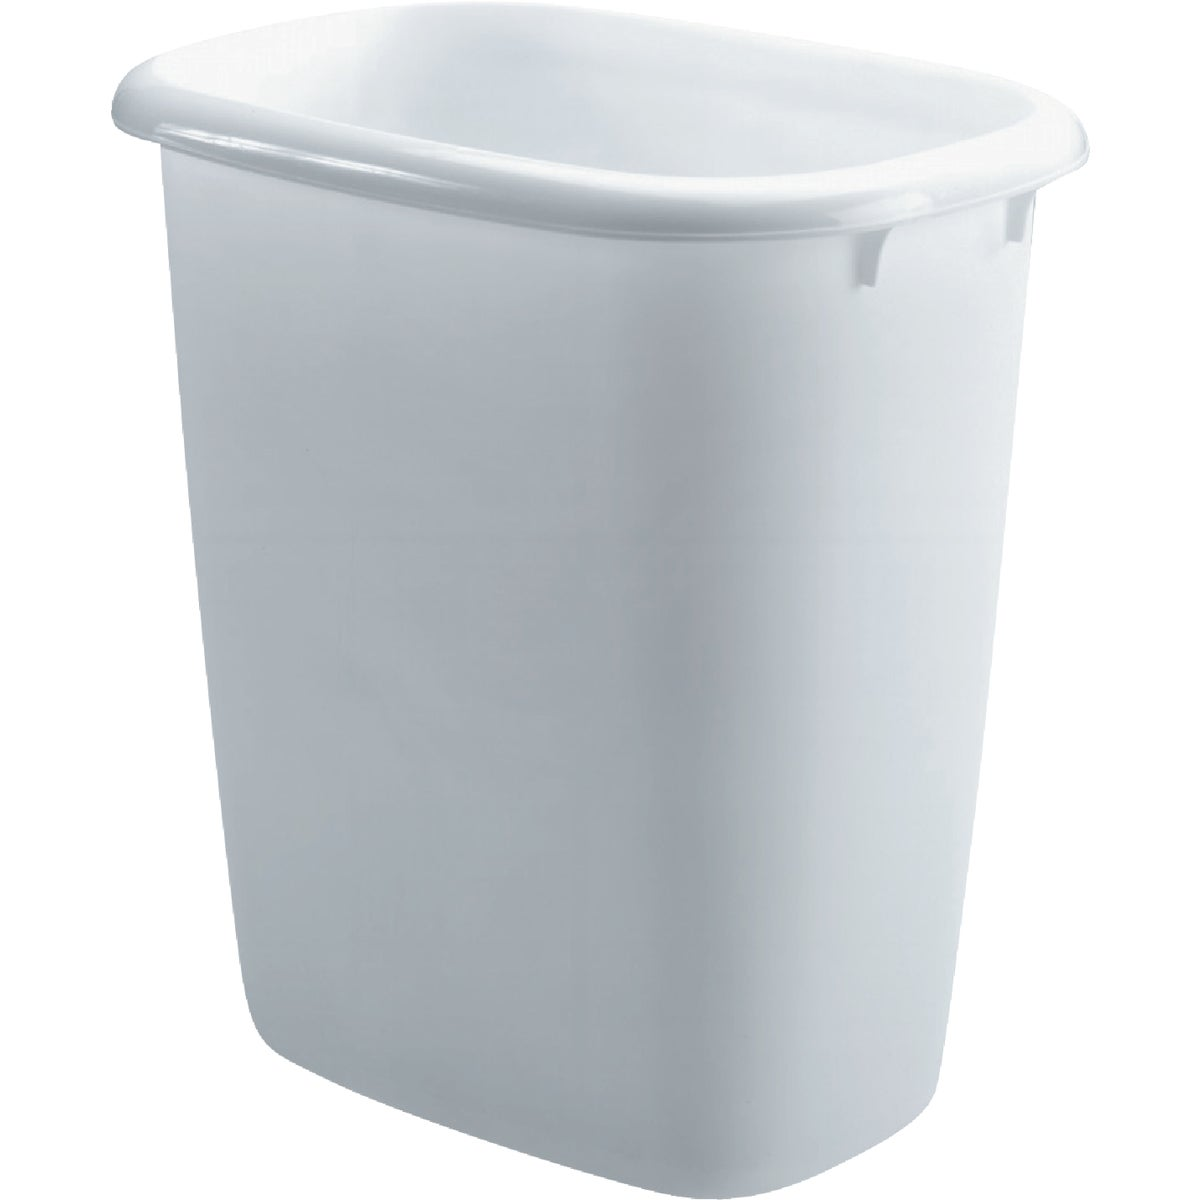 15QT WHITE WASTEBASKET - 295800-WHT by Rubbermaid Home